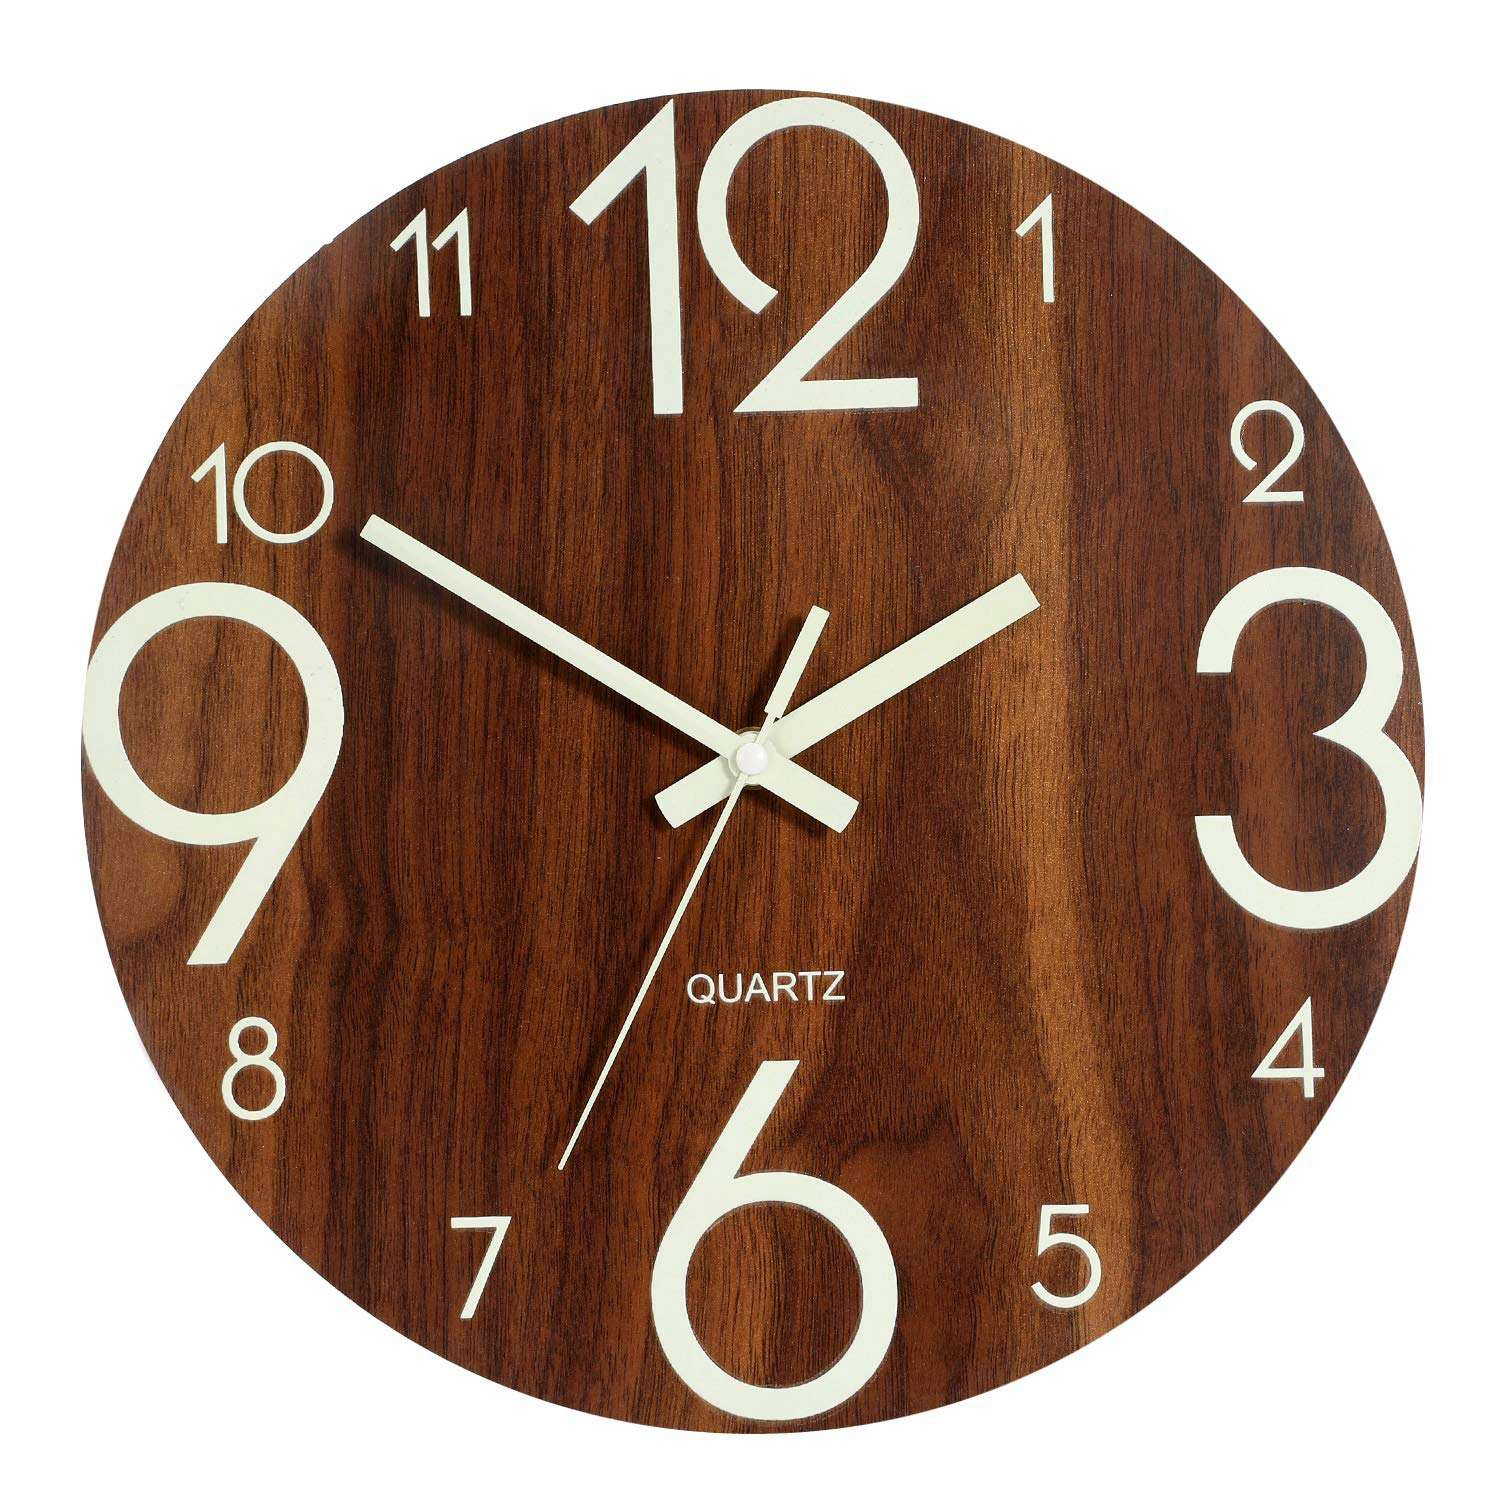 LBER Luminous Wall Clock,12 Inch Wooden Silent Non-Ticking Kitchen Wall Clocks With Night Lights For Indoor/Outdoor Living Roo